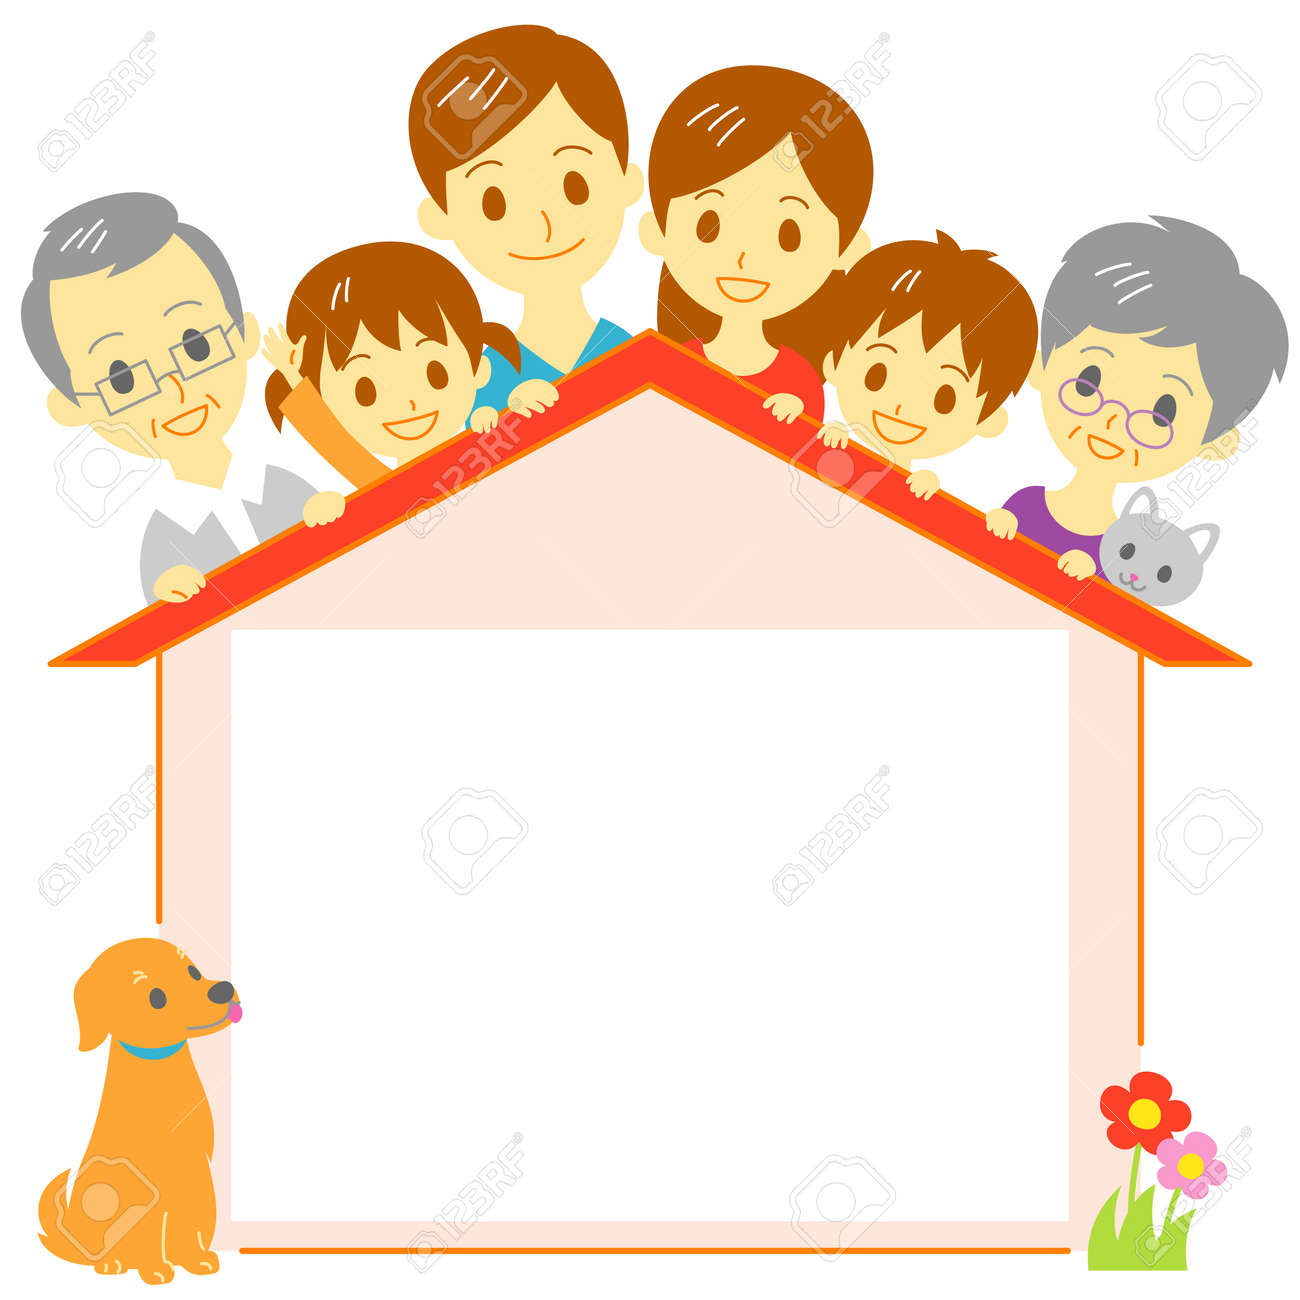 Family house copy space - 54789578